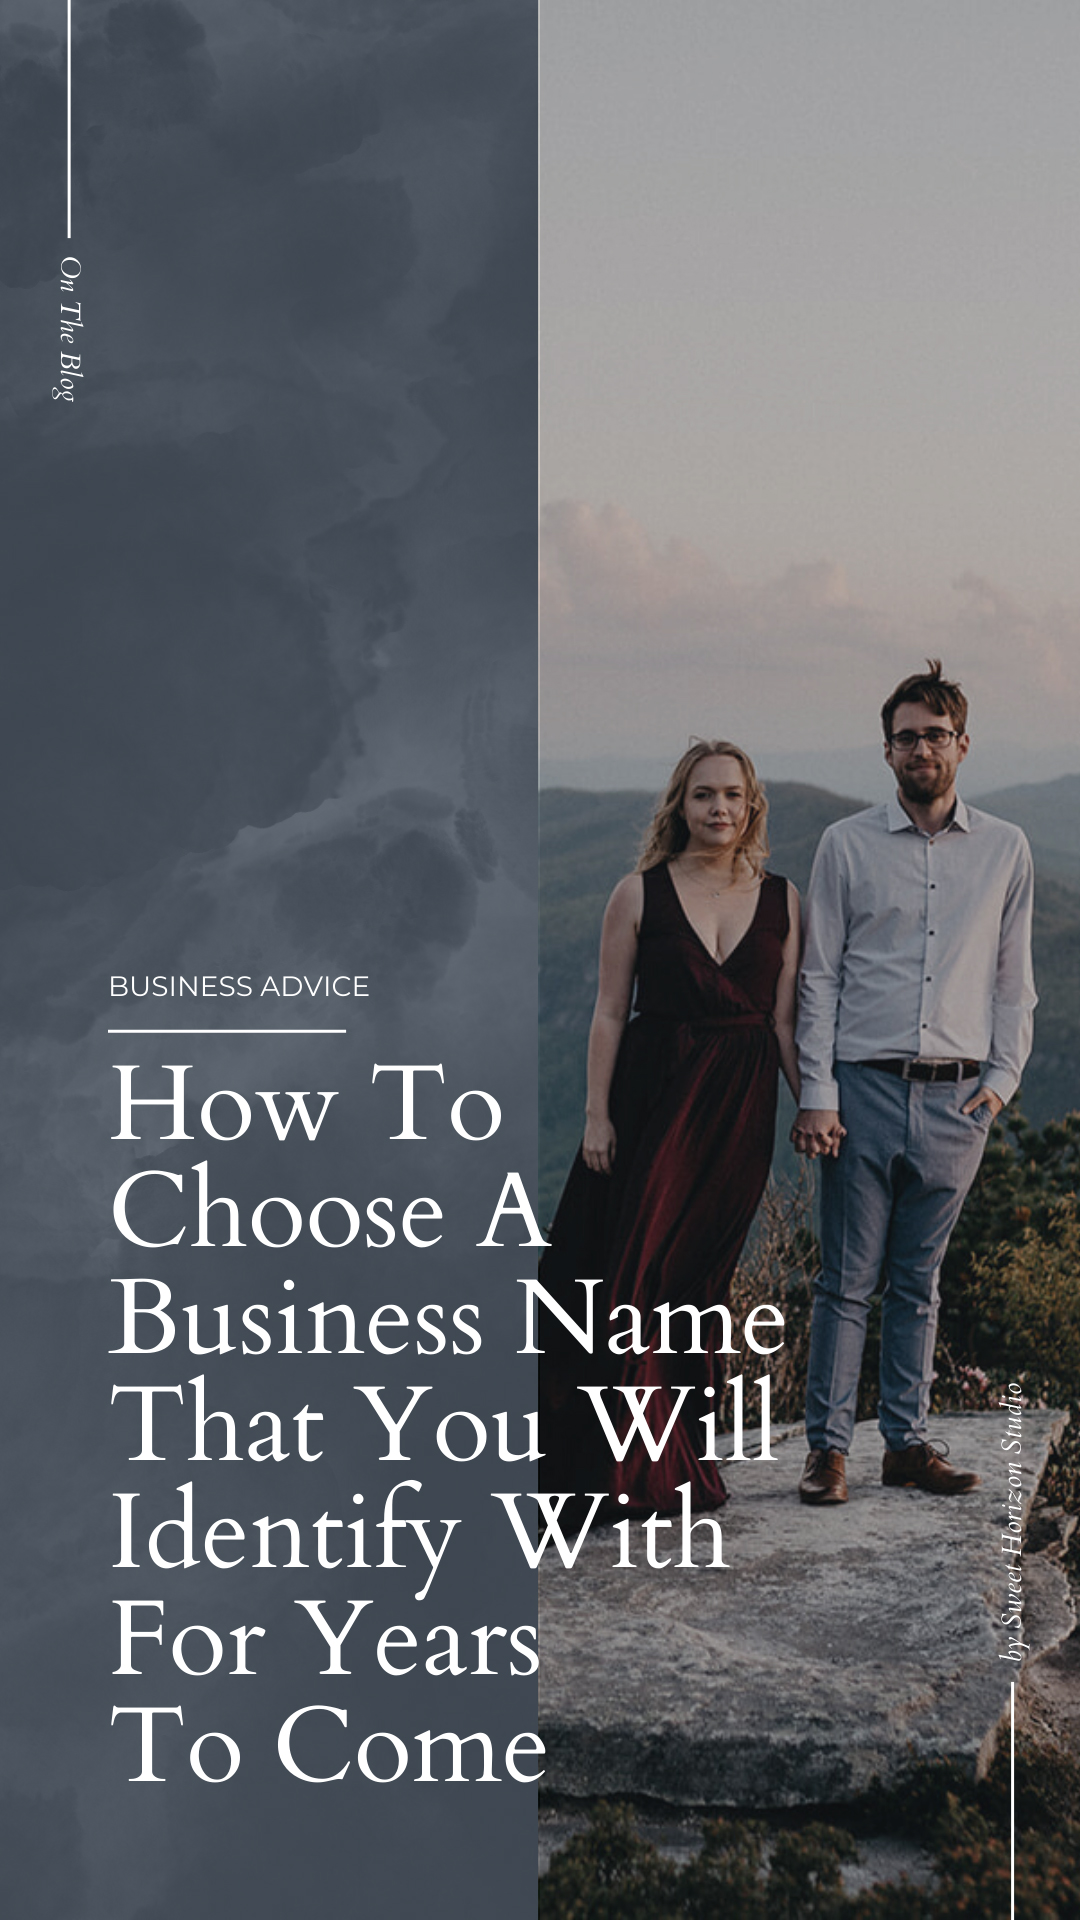 How to Choose a Business Name That You Will Identify With For Years to Come from www.sweethorizonblog.com